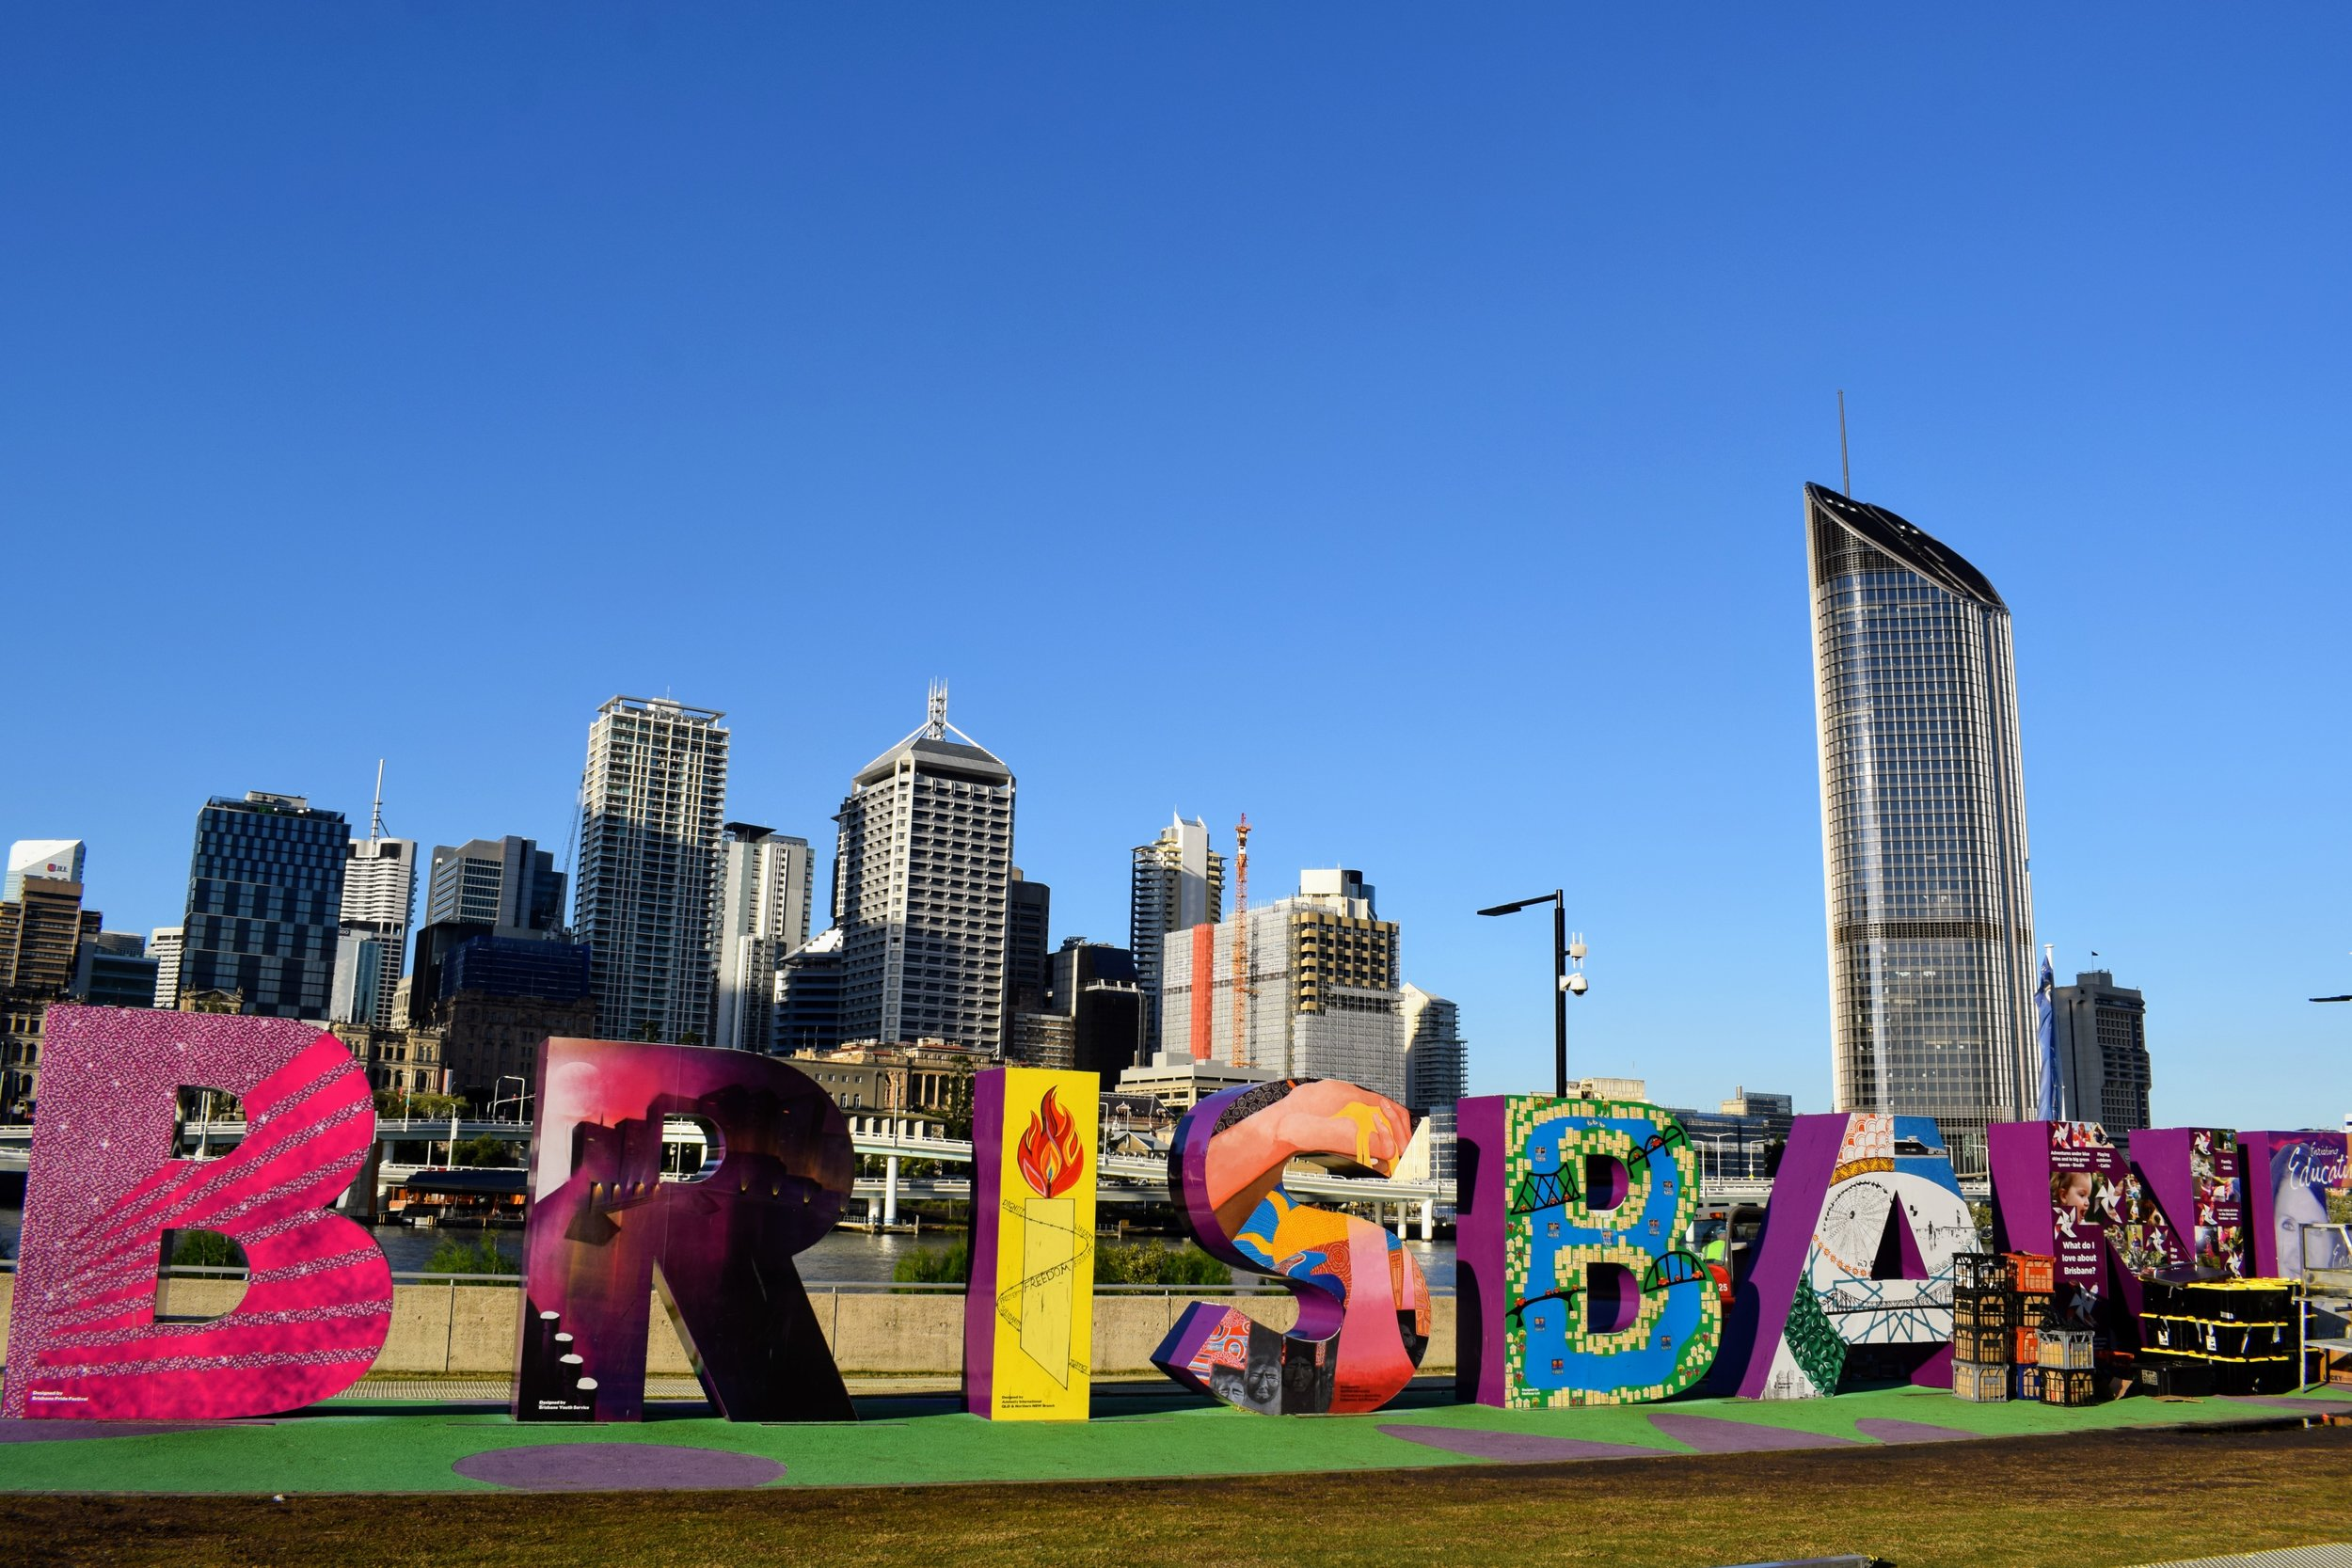 The photogenic BRISBANE letters on South Bank.. only partially covered by gear as workers setup the stands for the next days Night Noodle Markets.